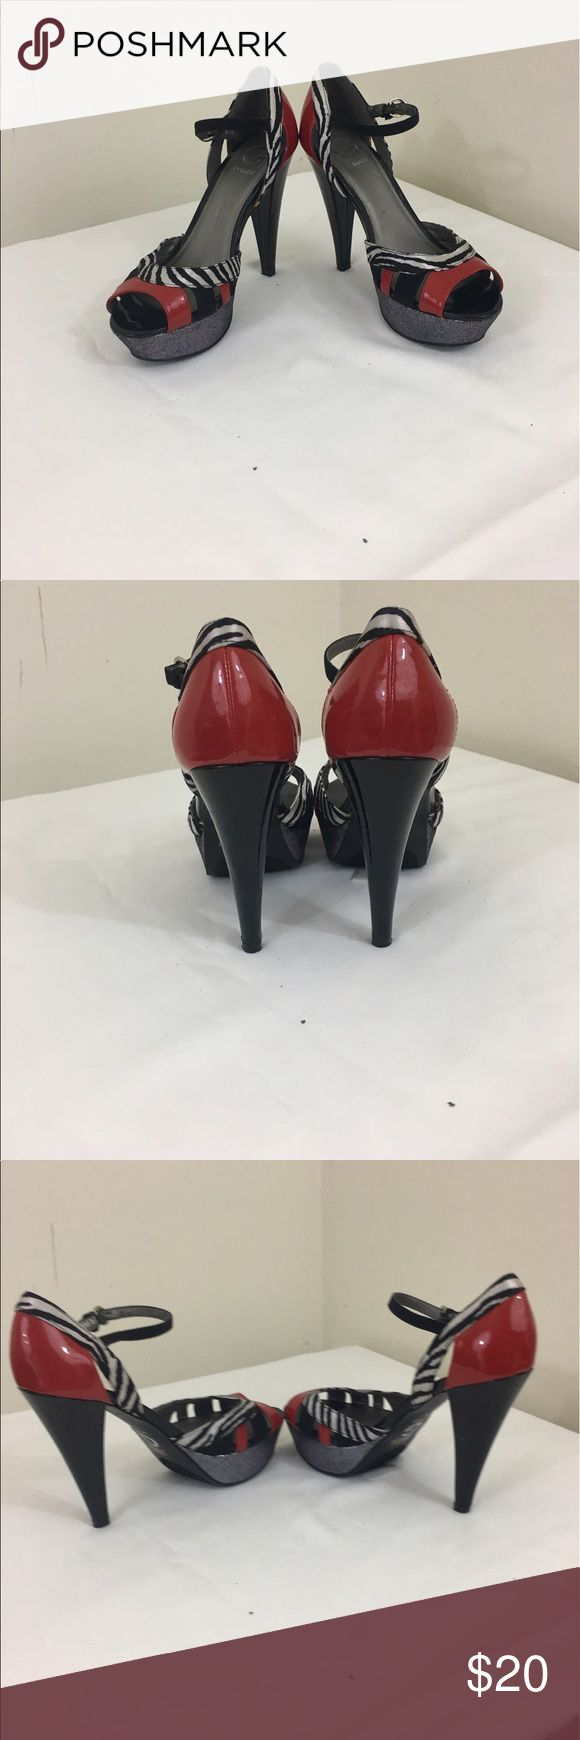 Guess women's Pumps size 8m. Red/White/Black Good condition    Has slight wear and may need slight cleaning Guess Shoes Heels